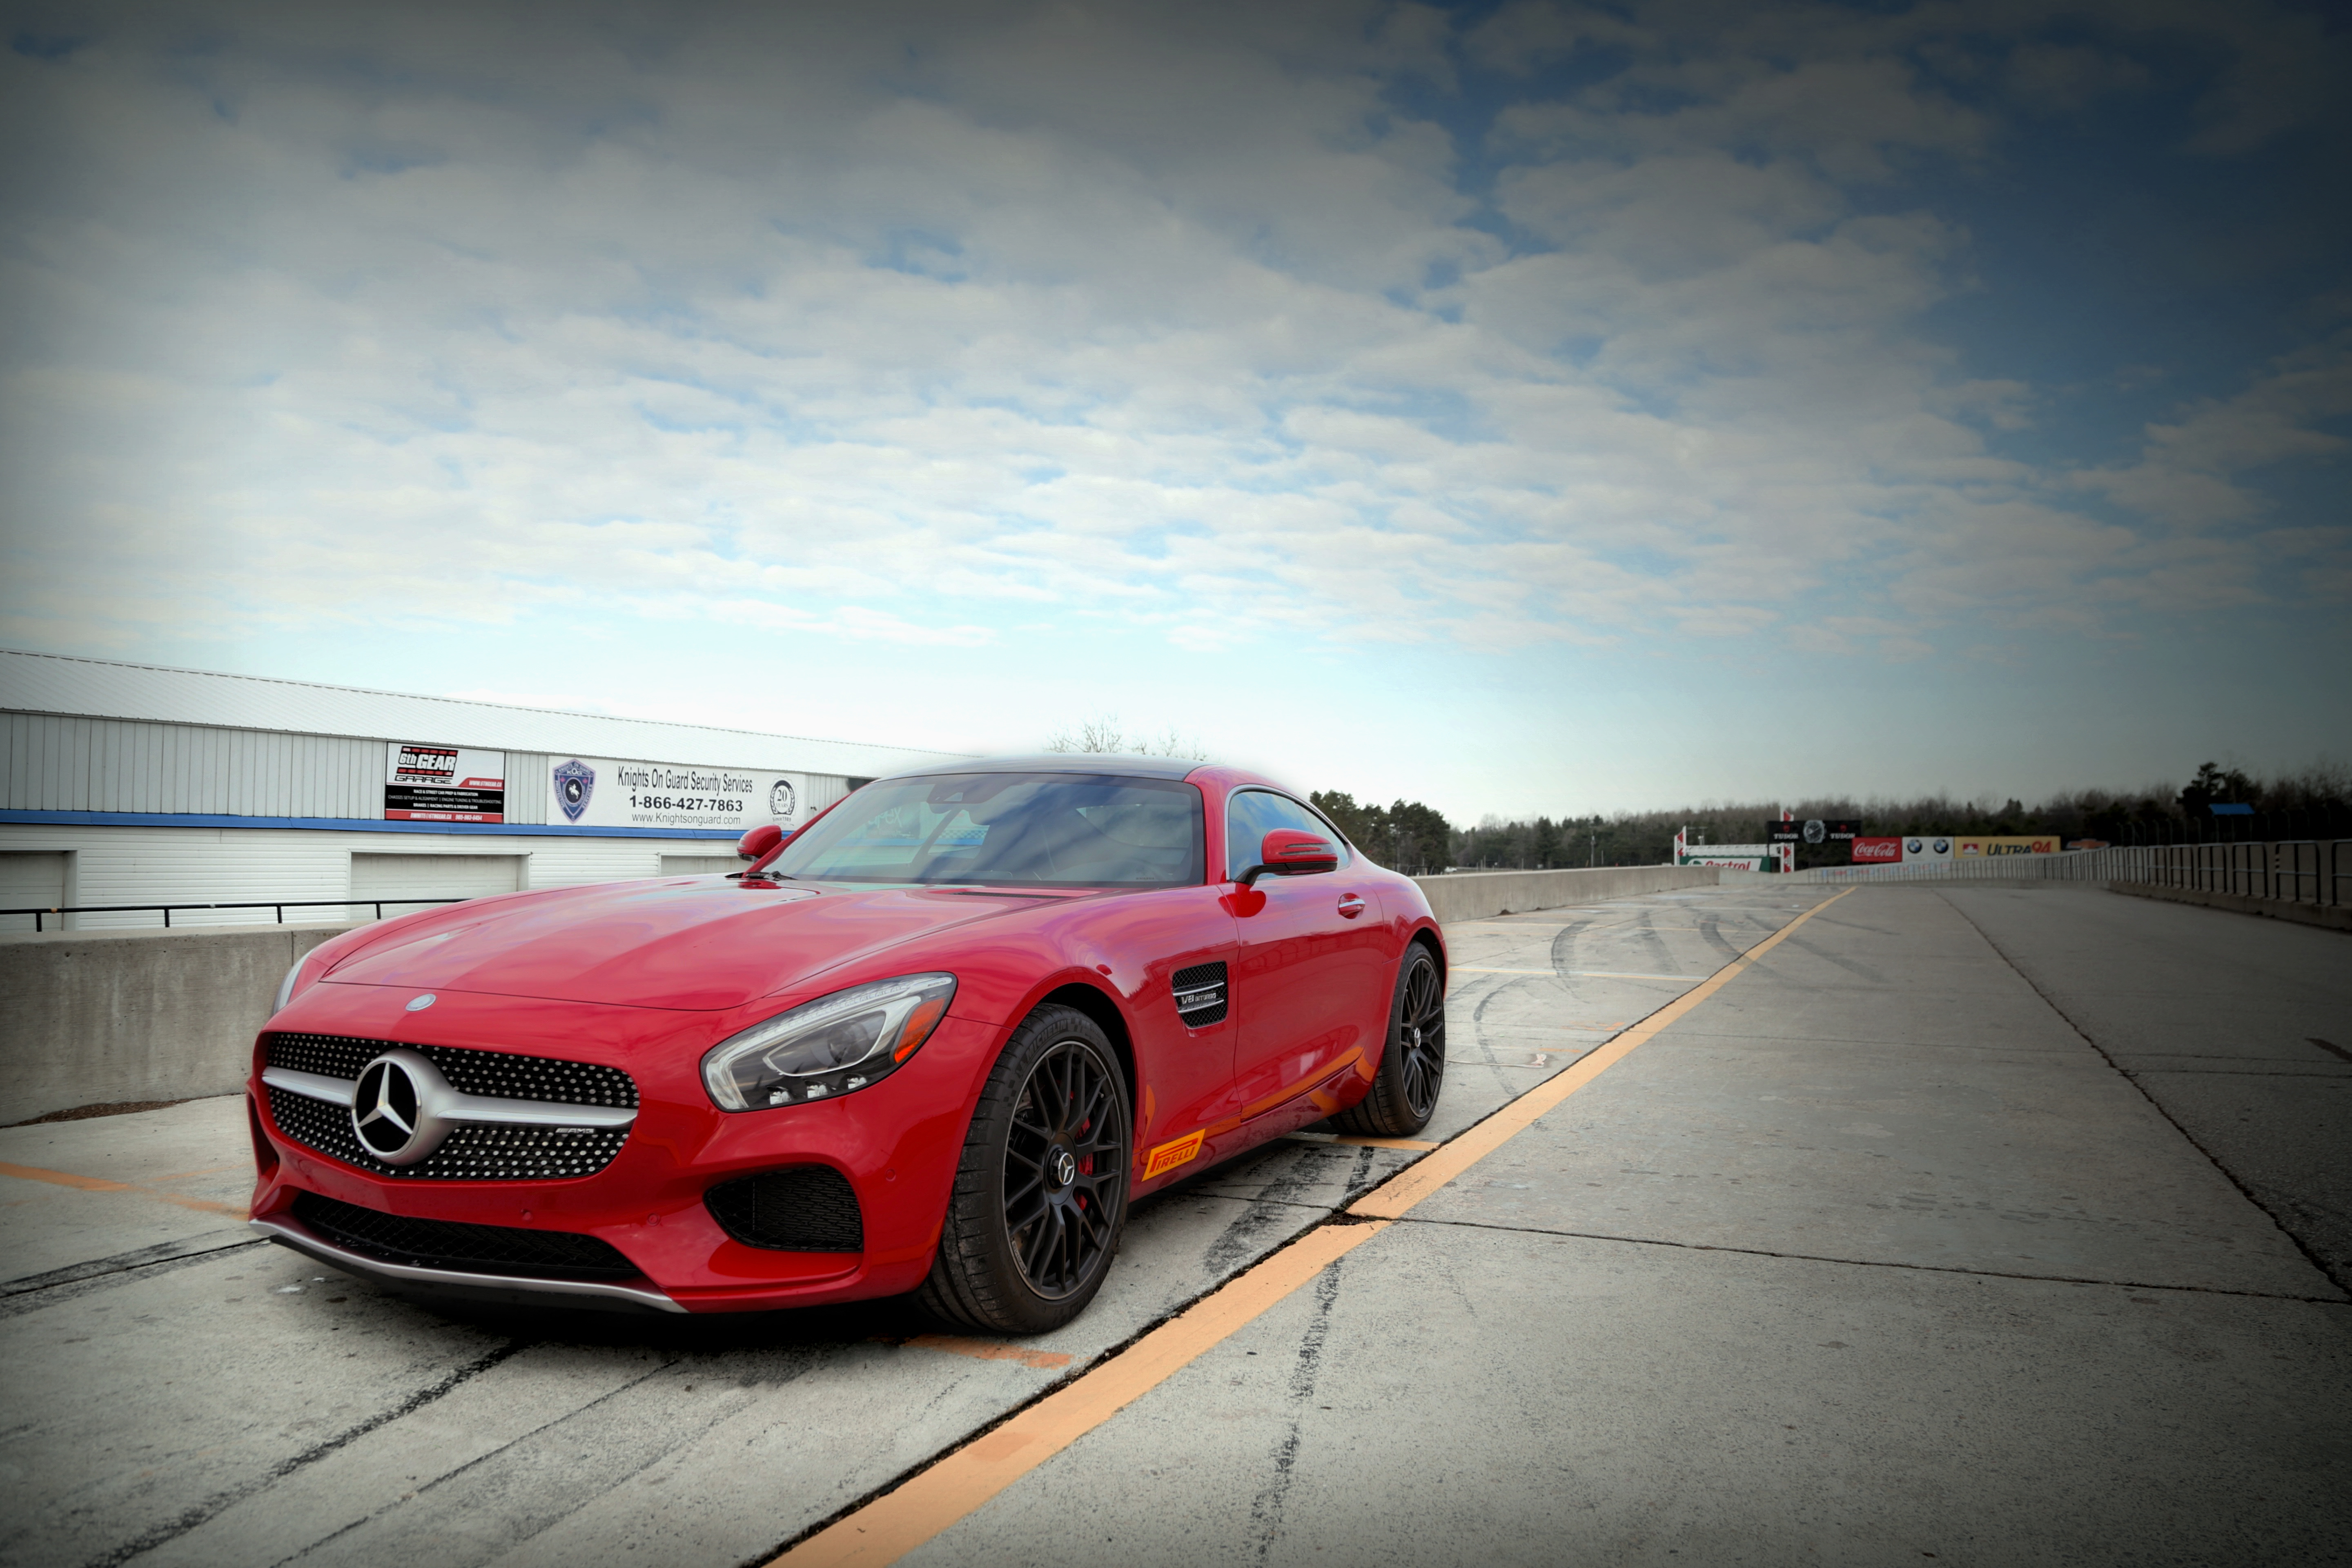 http://www.autoguide.com/blog/wp-content/gallery/2016-mercedes-benz-amg-gt-s-review/2016-Mercedes-Benz-AMG-GT-S-Review-1.jpg